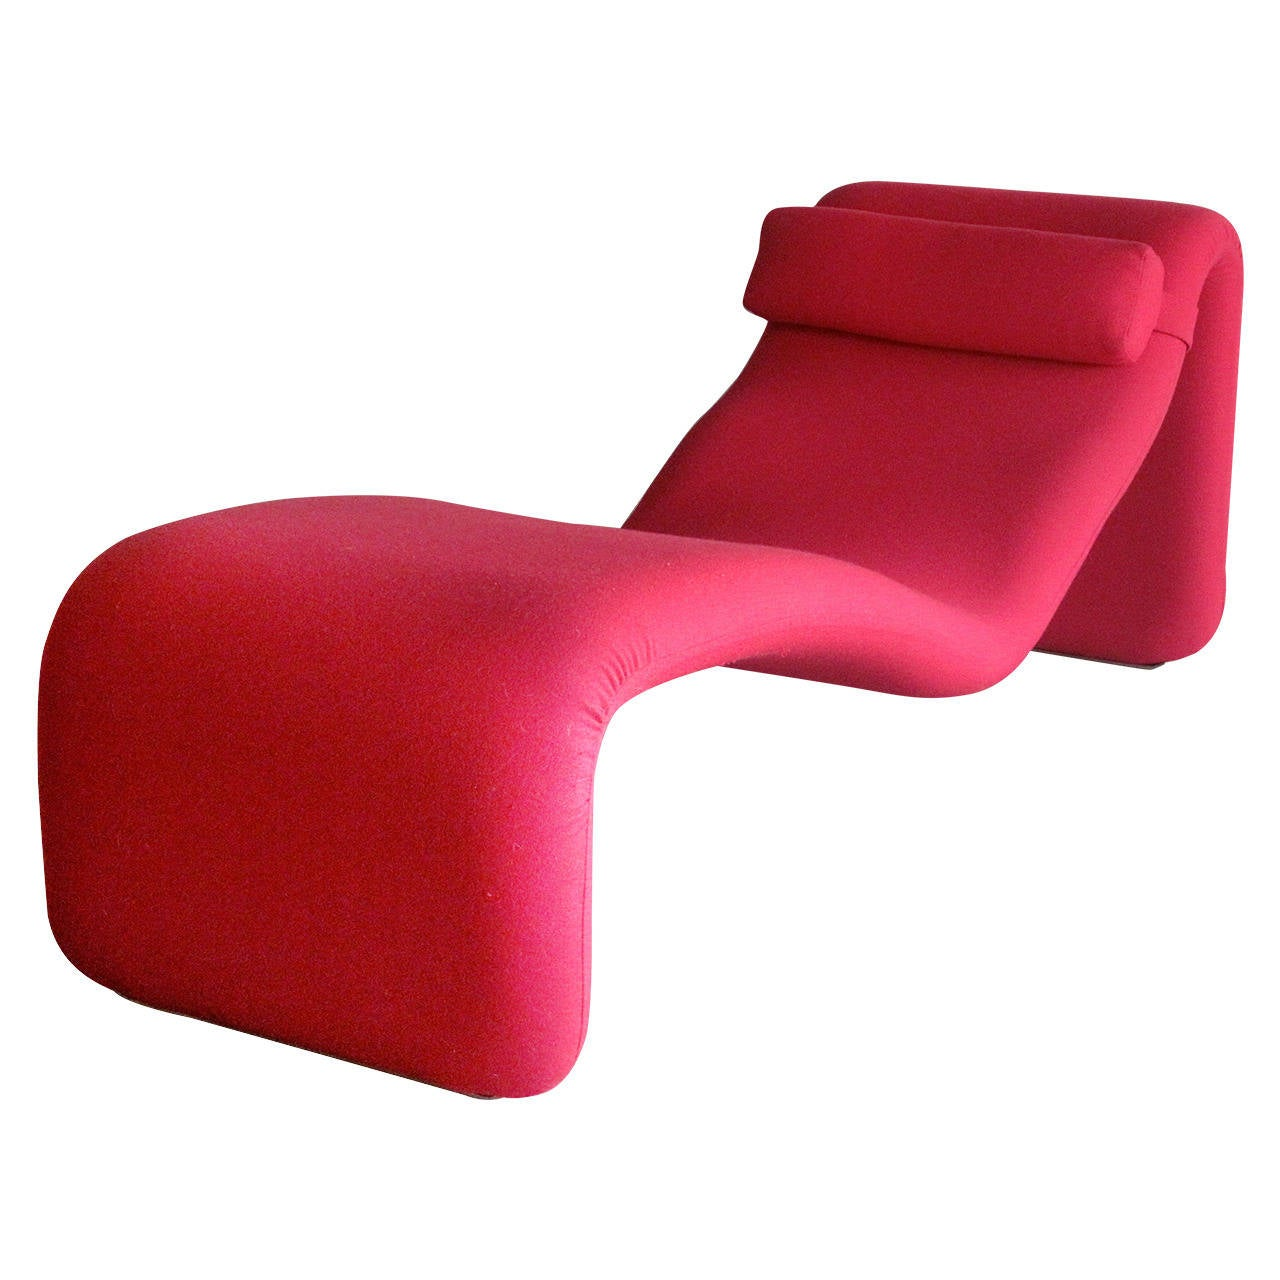 Olivier mourgue 39 djinn 39 chaise longue made by airborne for Chaise francaise